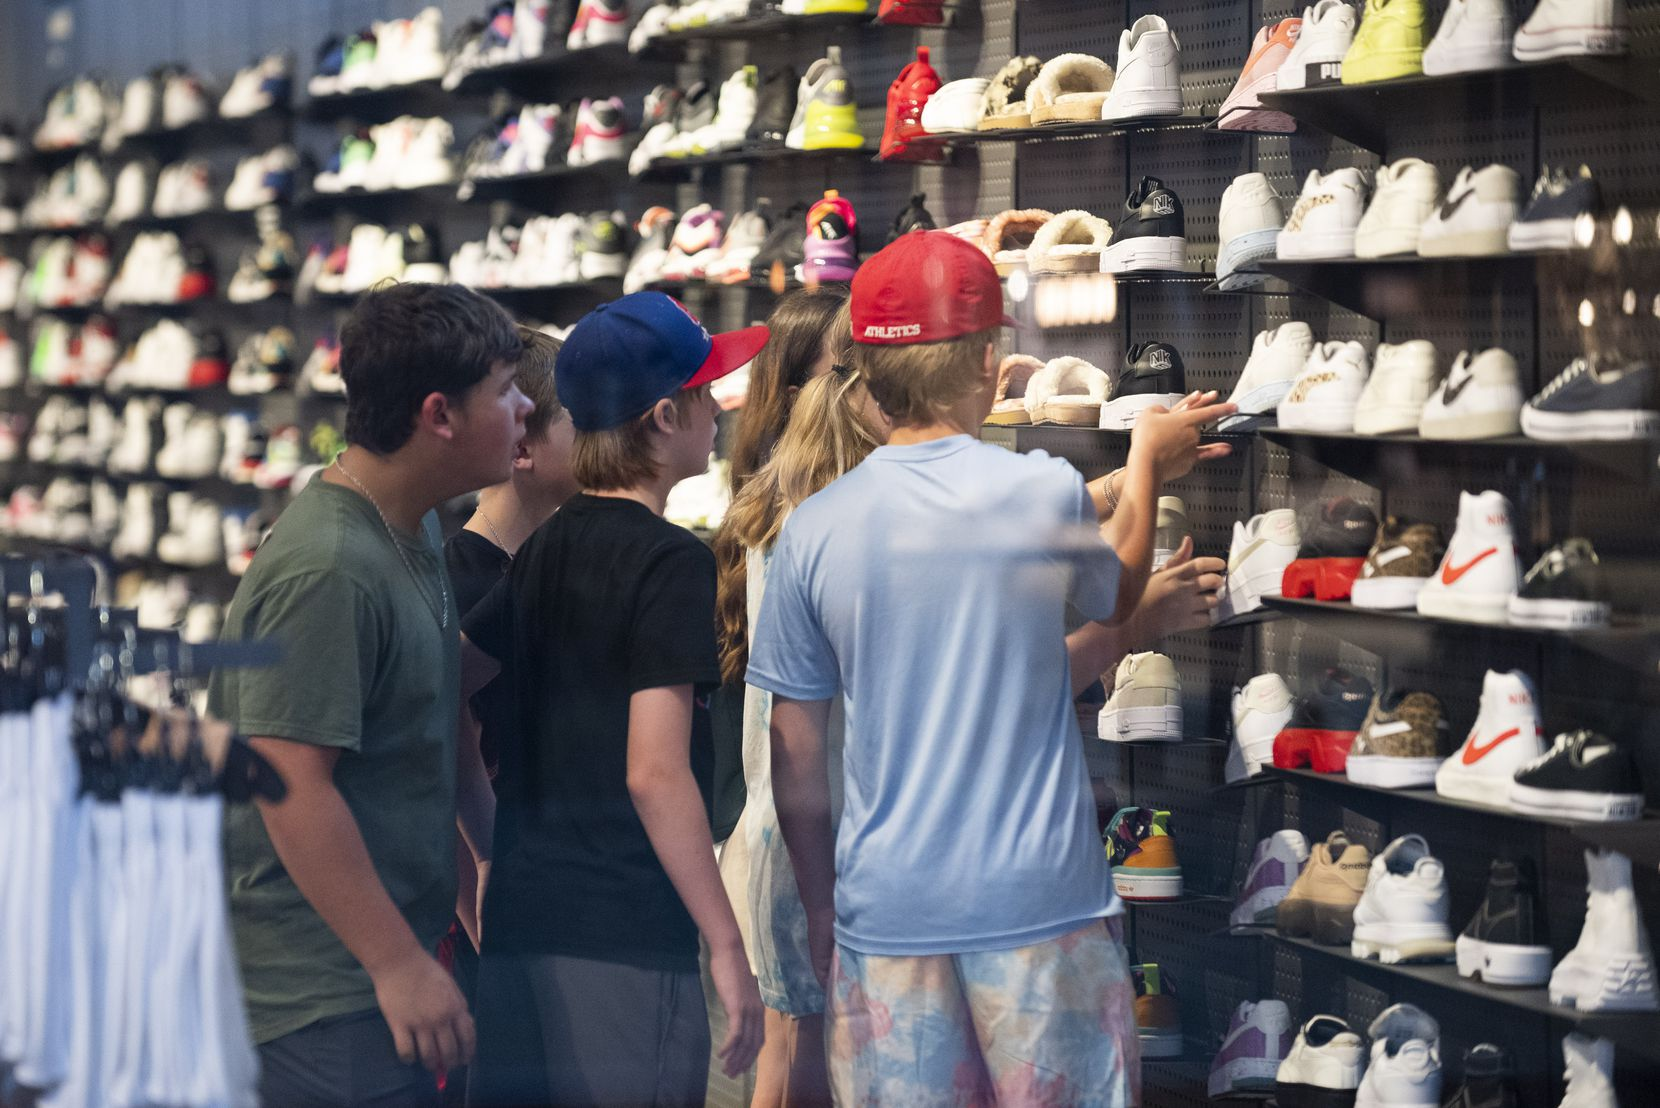 A group of teens browses the shoes inside Finish Line at NorthPark Center in Dallas.